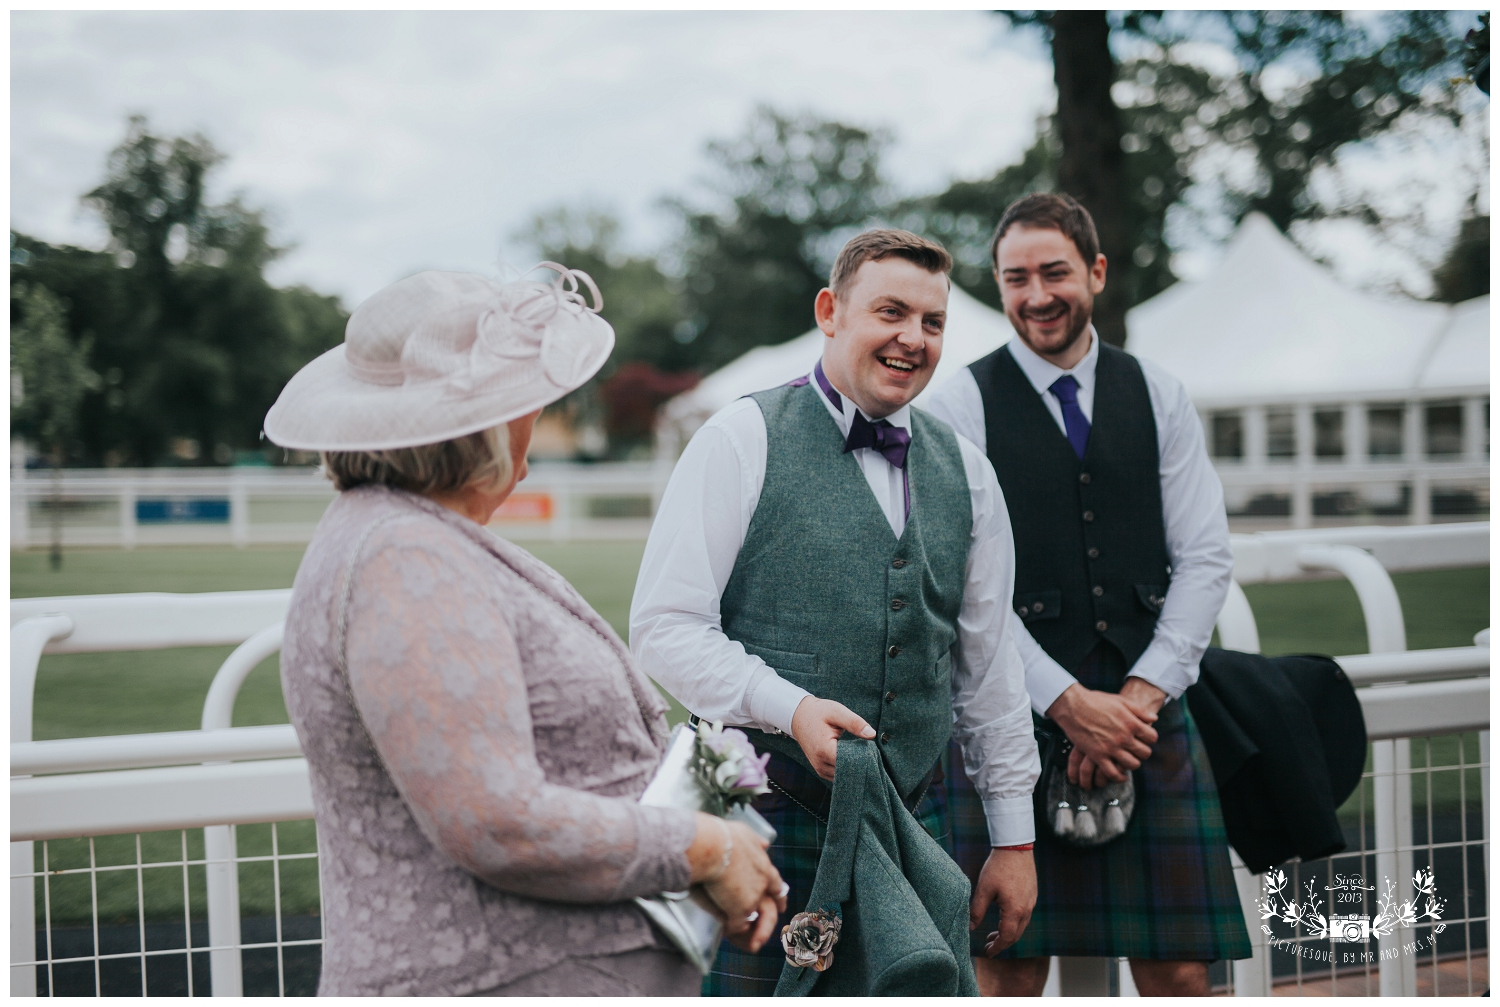 Hamilton Park Racecourse  wedding photography, Picturesque by Mr and Mrs M_0023.jpg